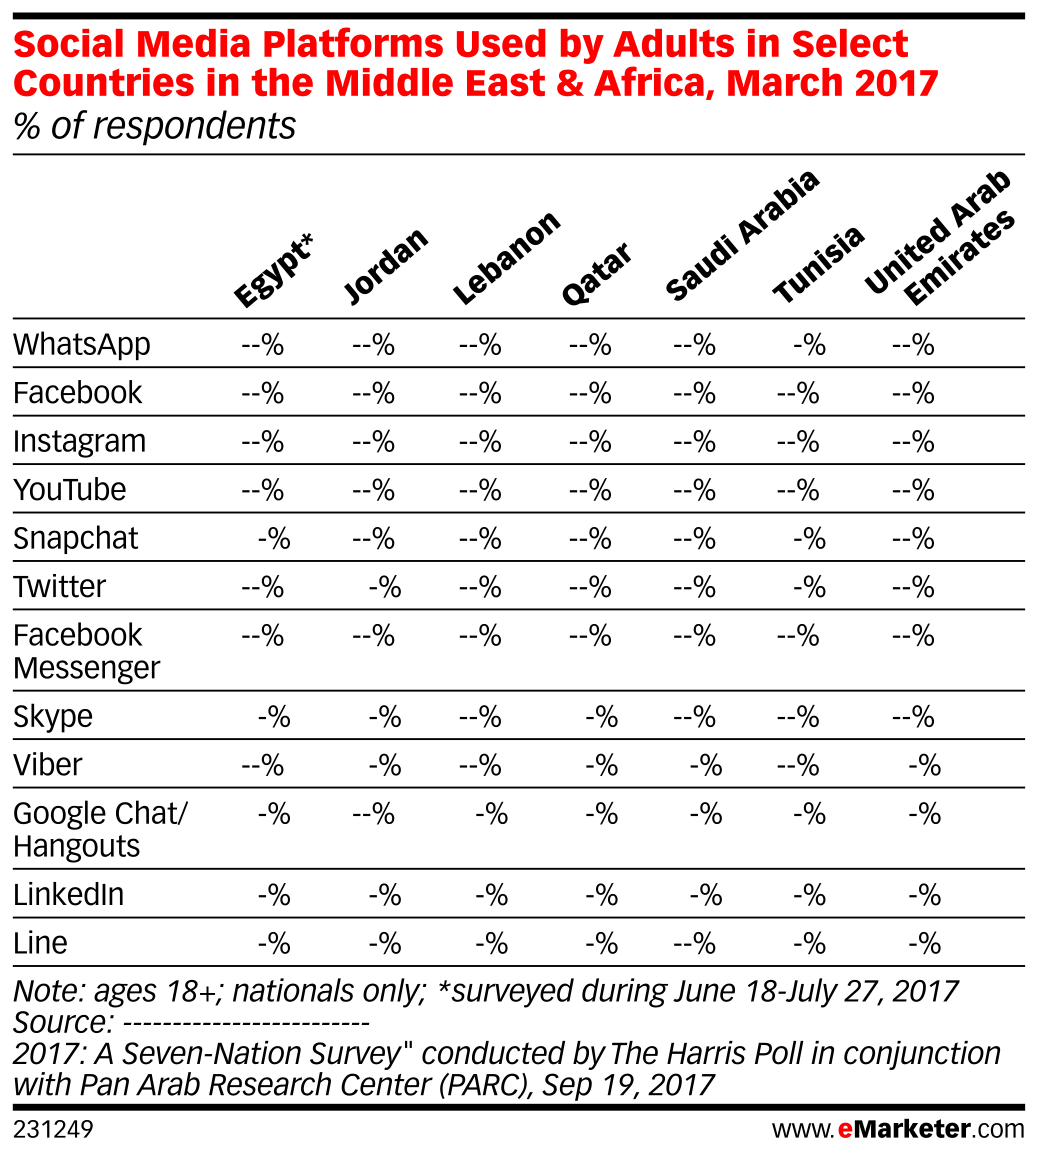 Social Media Platforms Used by Adults in Select Countries in the Middle East & Africa, March 2017 (% of respondents)